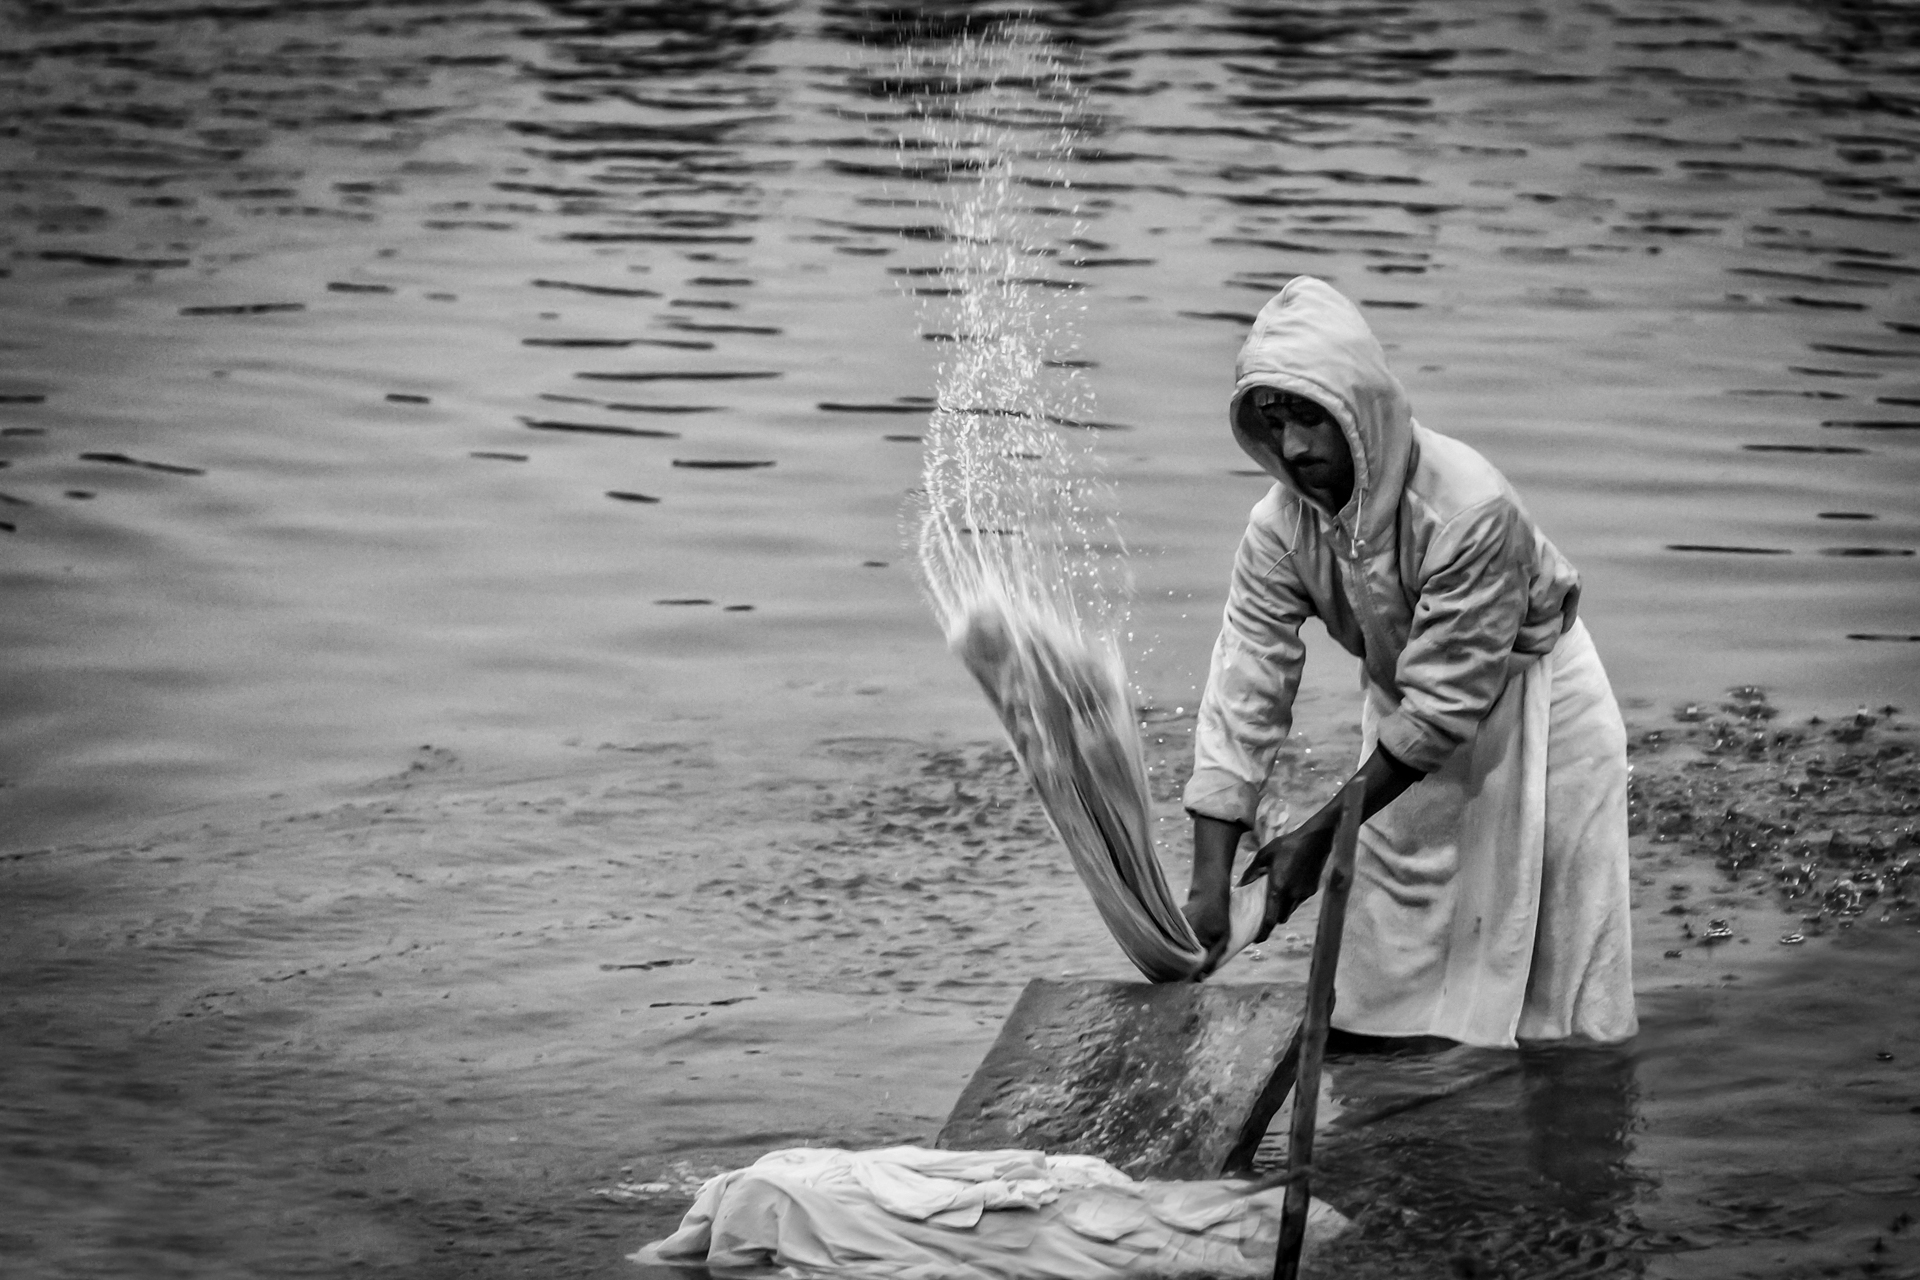 India-Ganges-laundry